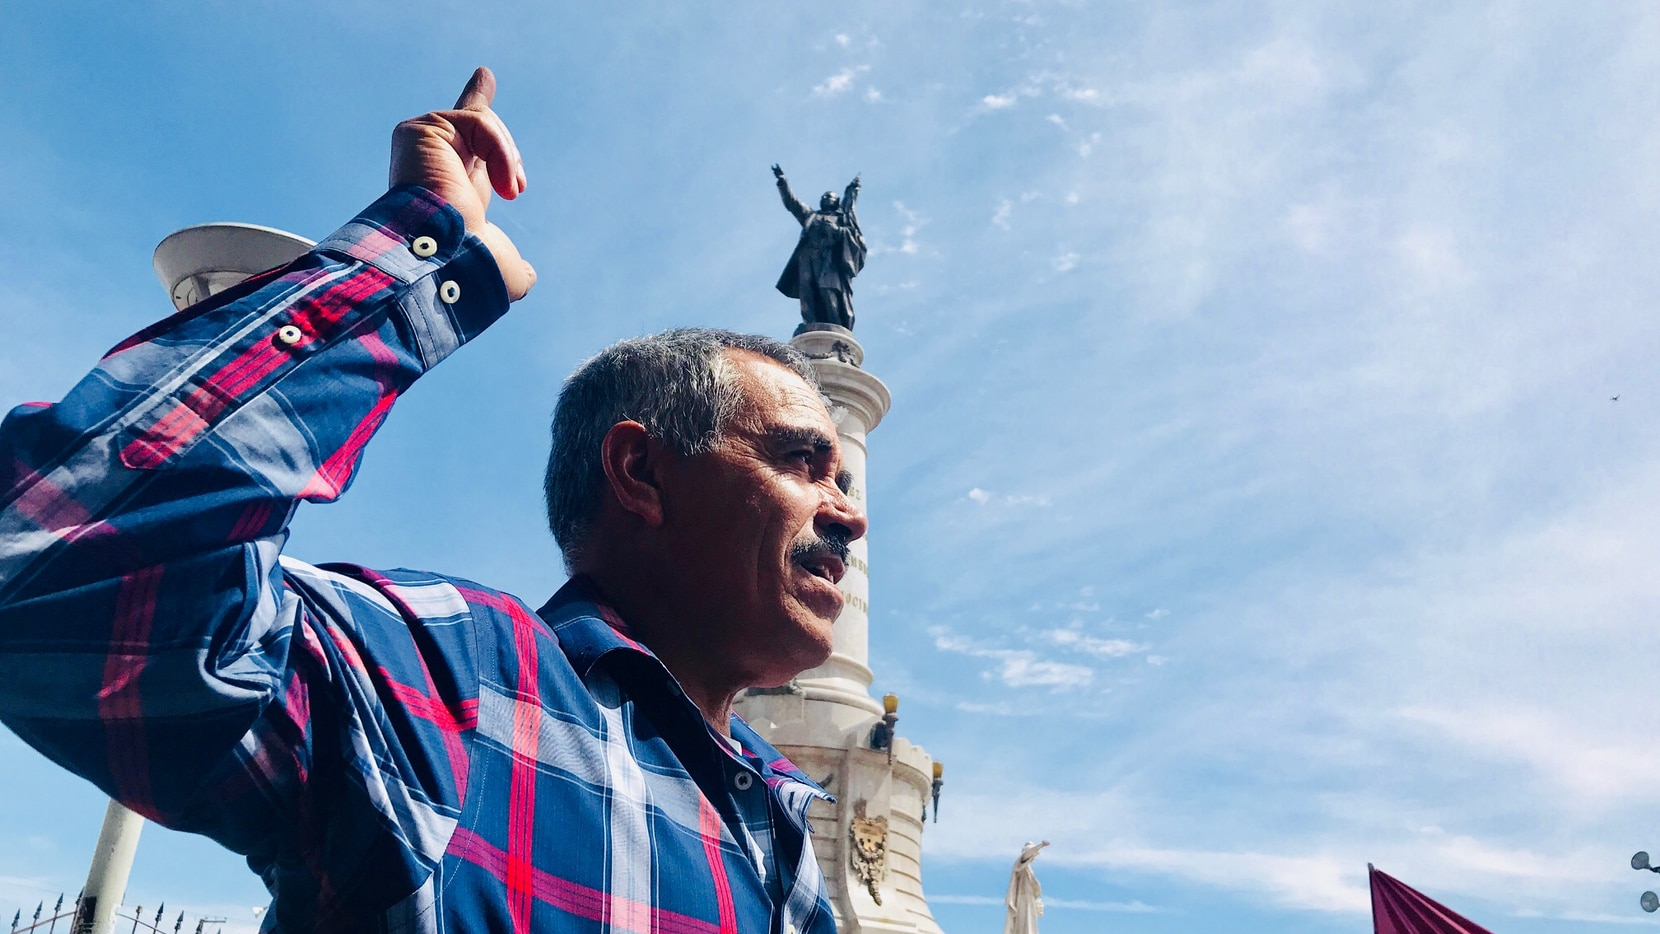 Leobado Nuñez stood up and greeted presidential frontrunner Andres Manuel Lopez Obrador, who kicked off his presidential run Easter Sunday in Ciudad Juarez.